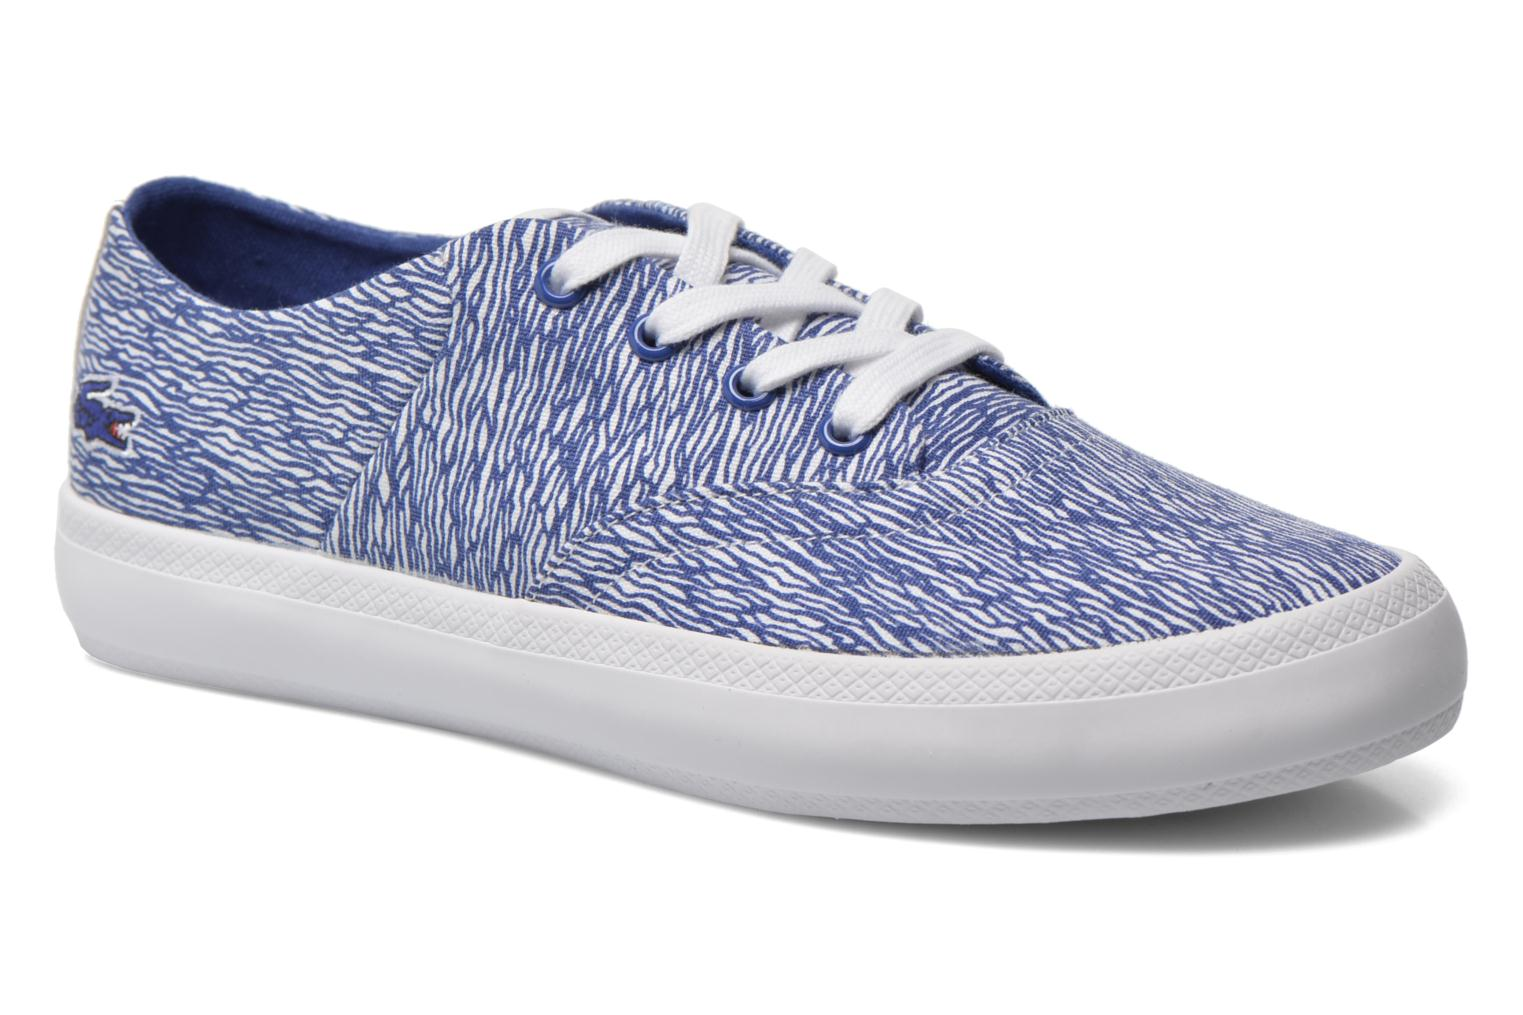 Marques Chaussure femme Lacoste femme Rene Chunky 216 G2 White/blue